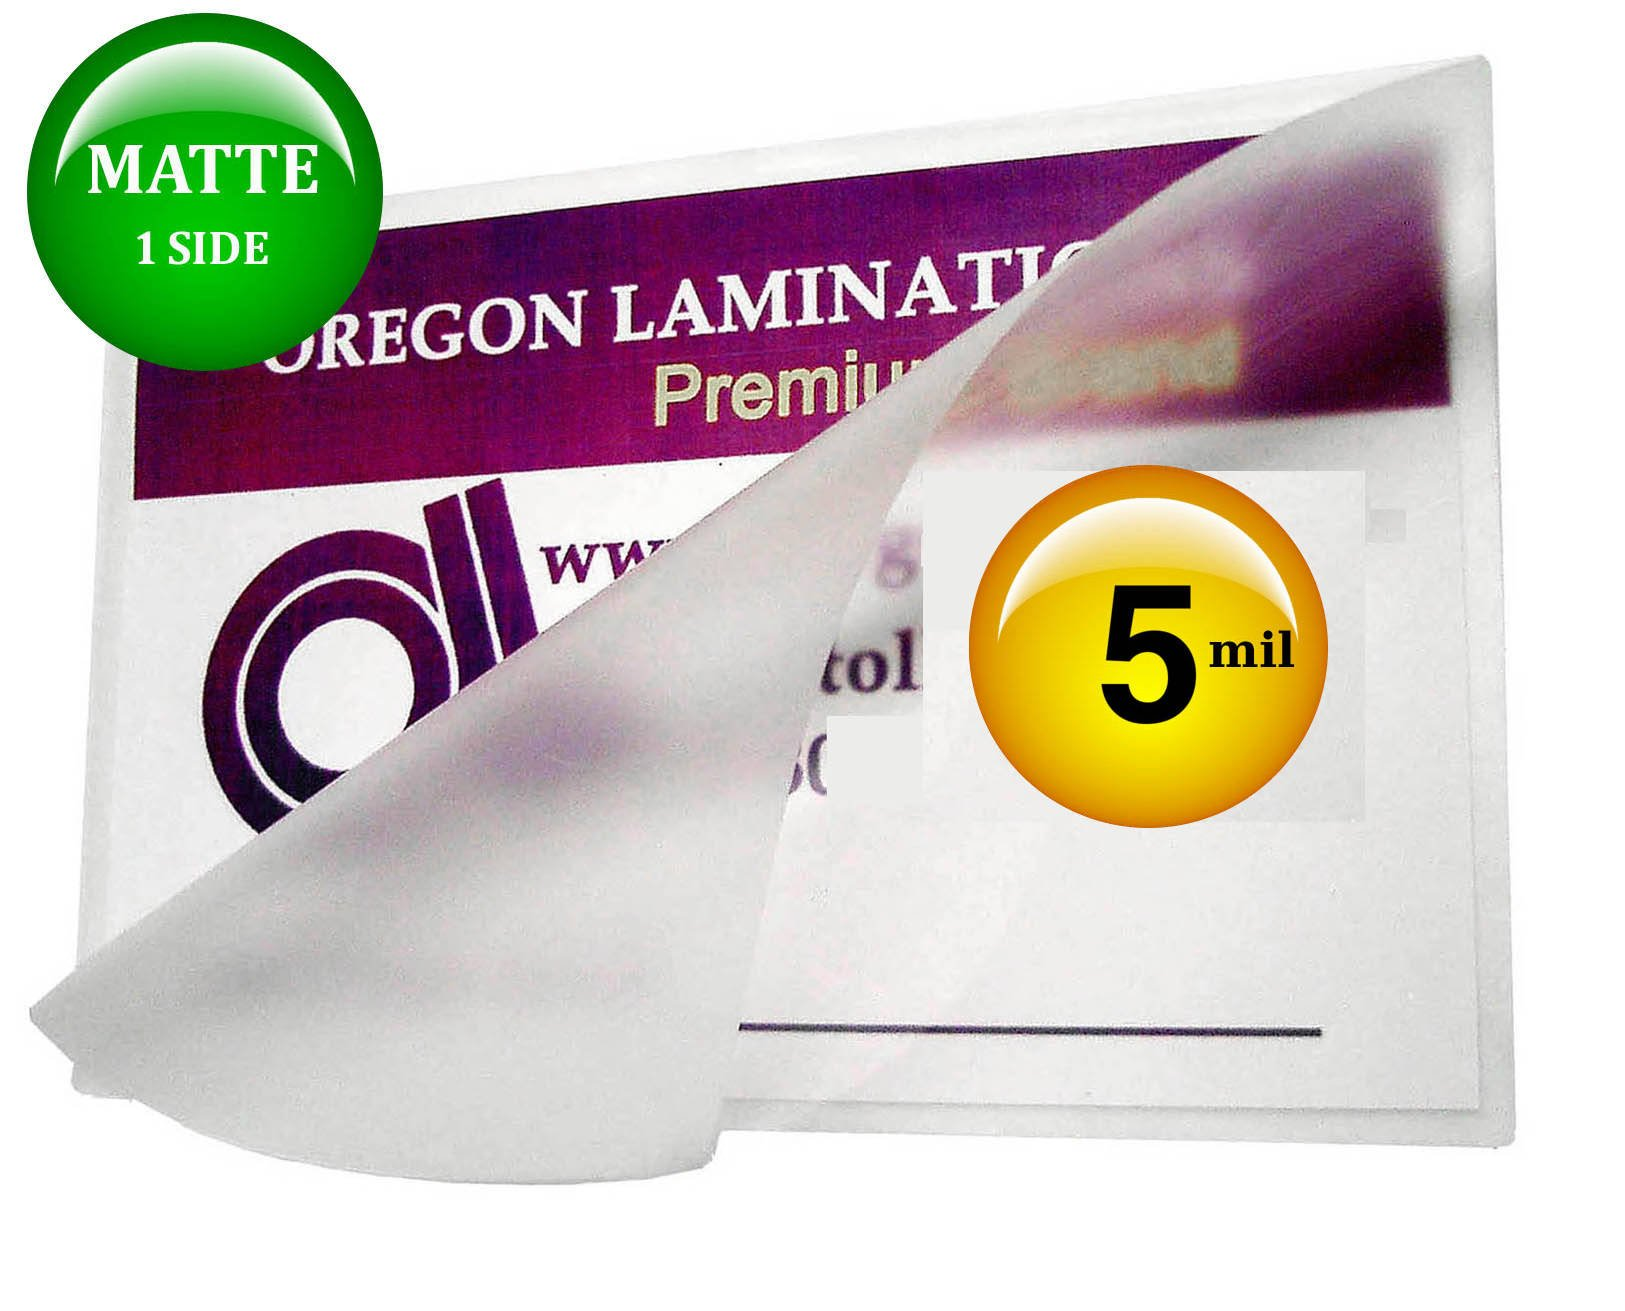 Oregon Lamination Hot Laminating Pouches Legal (pack of 100) 5 Mil 9 x 14-1/2 Matte/Gloss